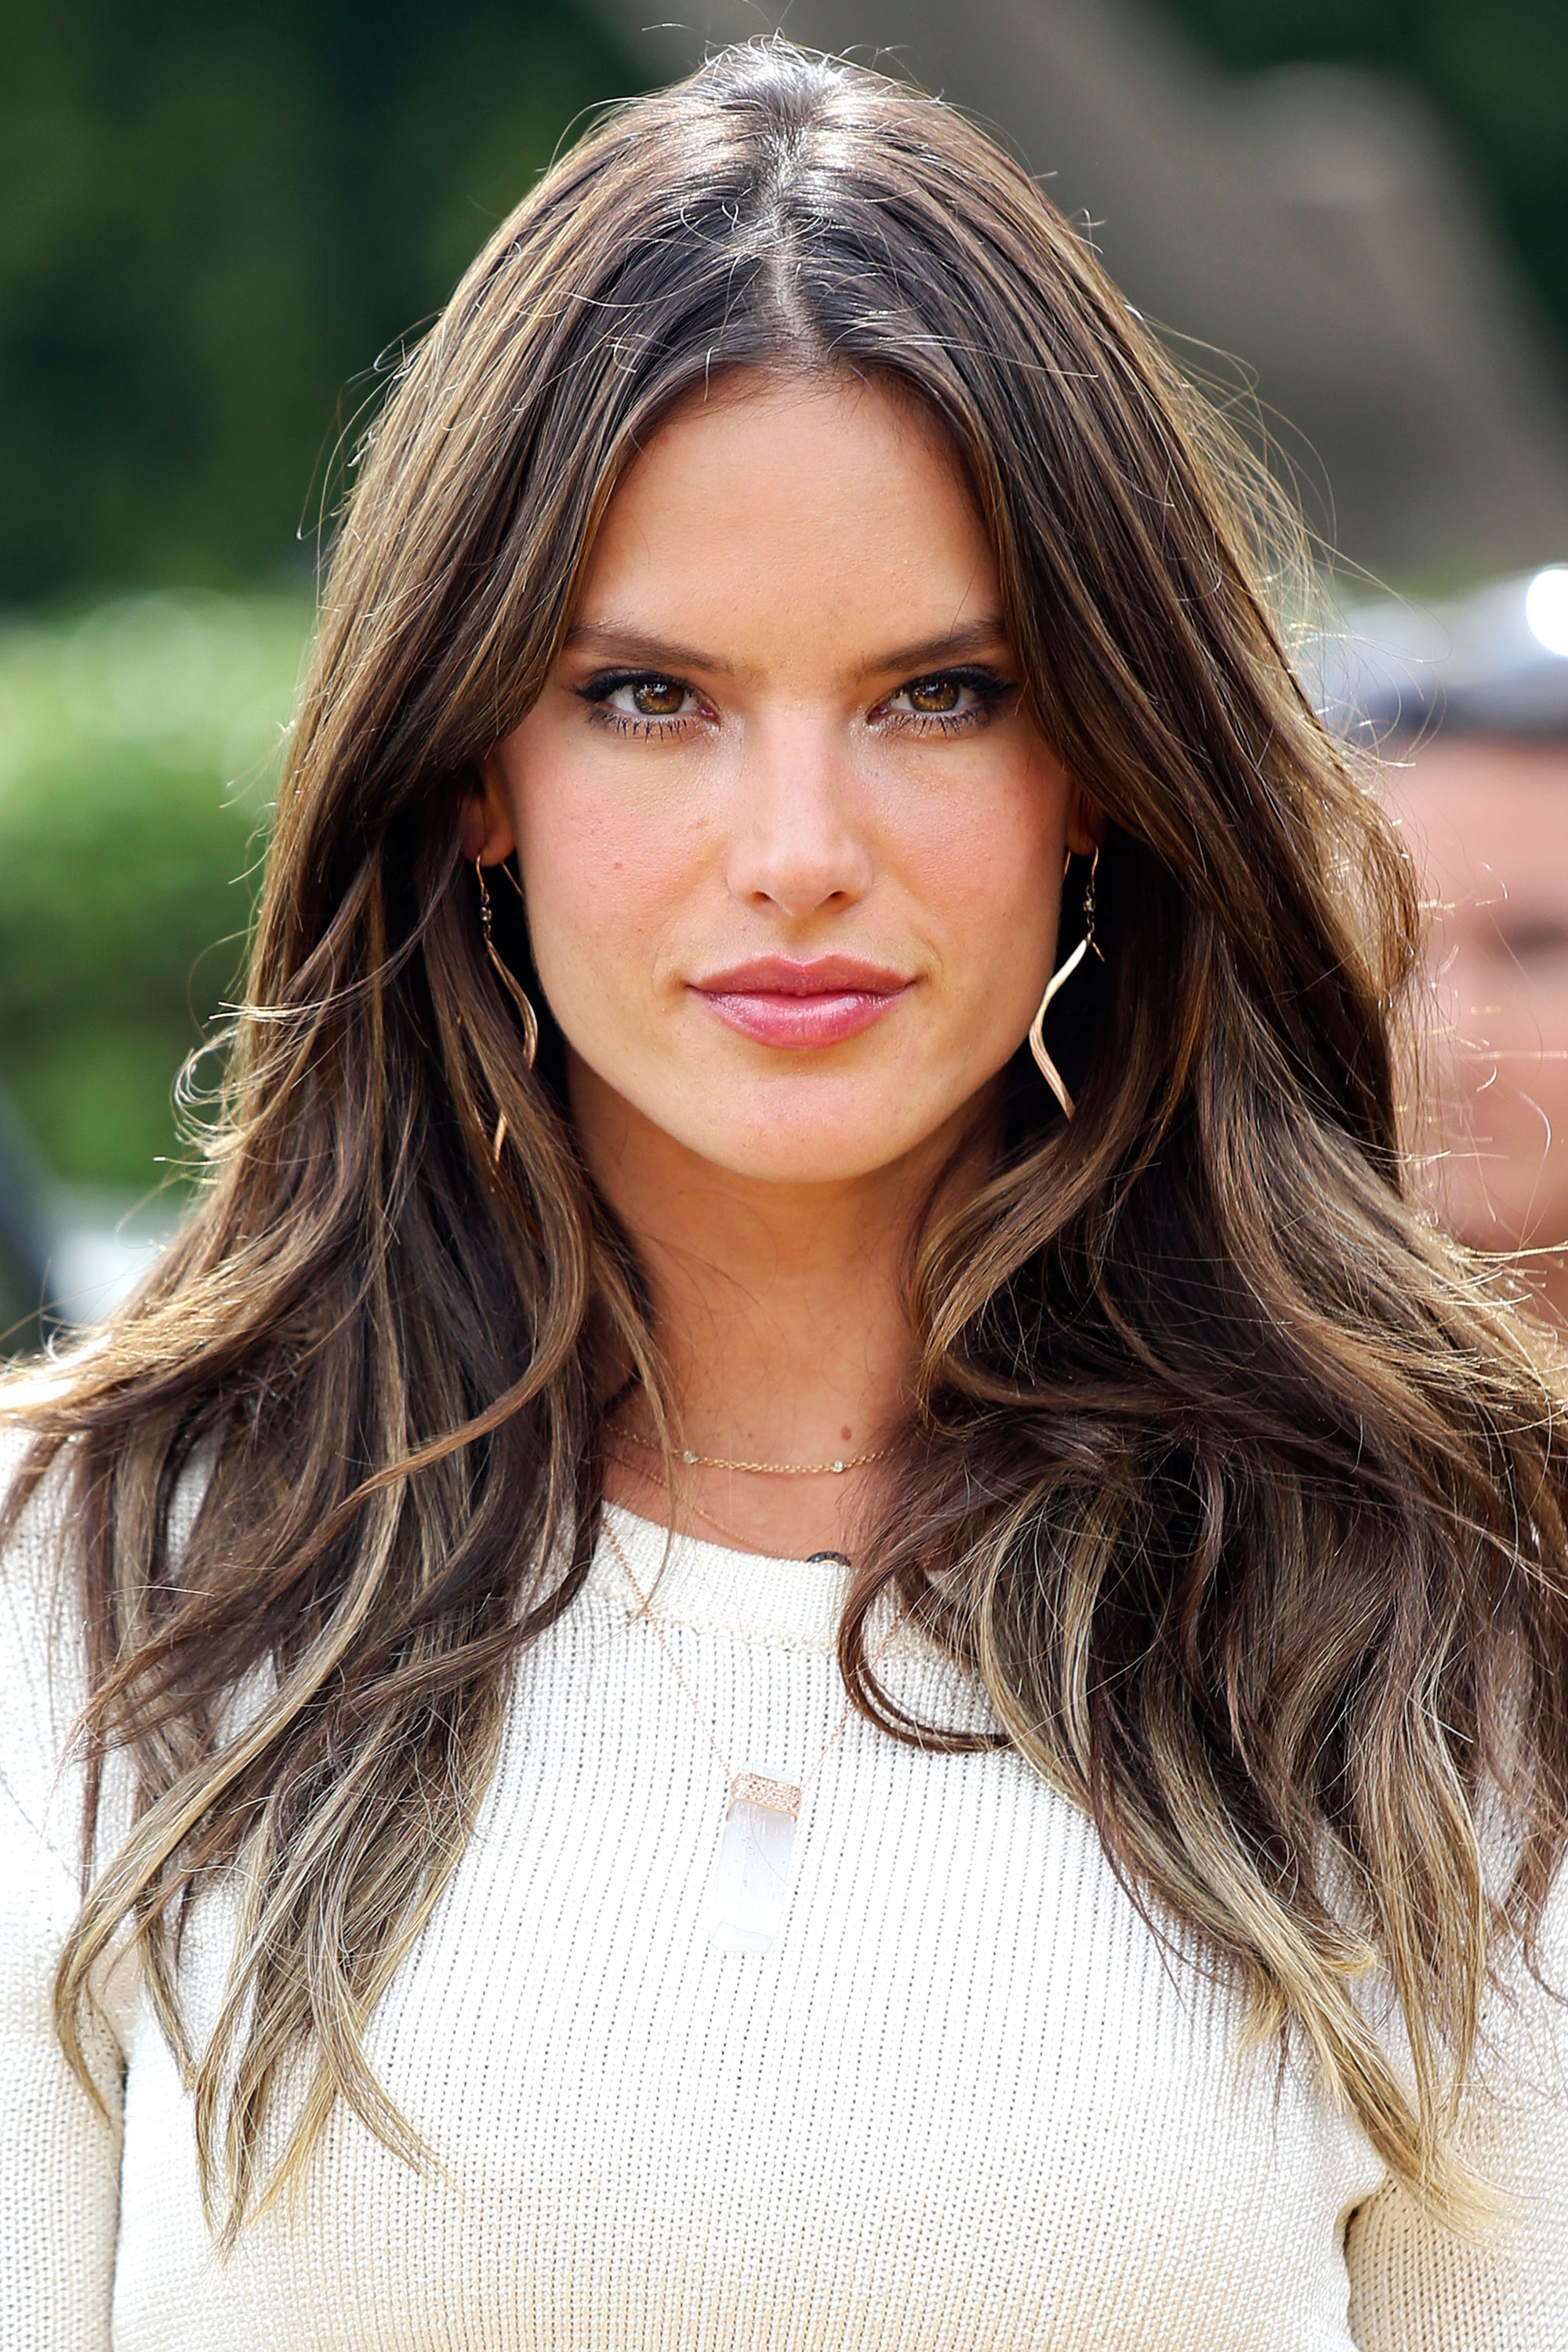 Sensational 28 Long Hairstyles And Haircuts 2017 Best Hairstyles For Long Hair Hairstyle Inspiration Daily Dogsangcom